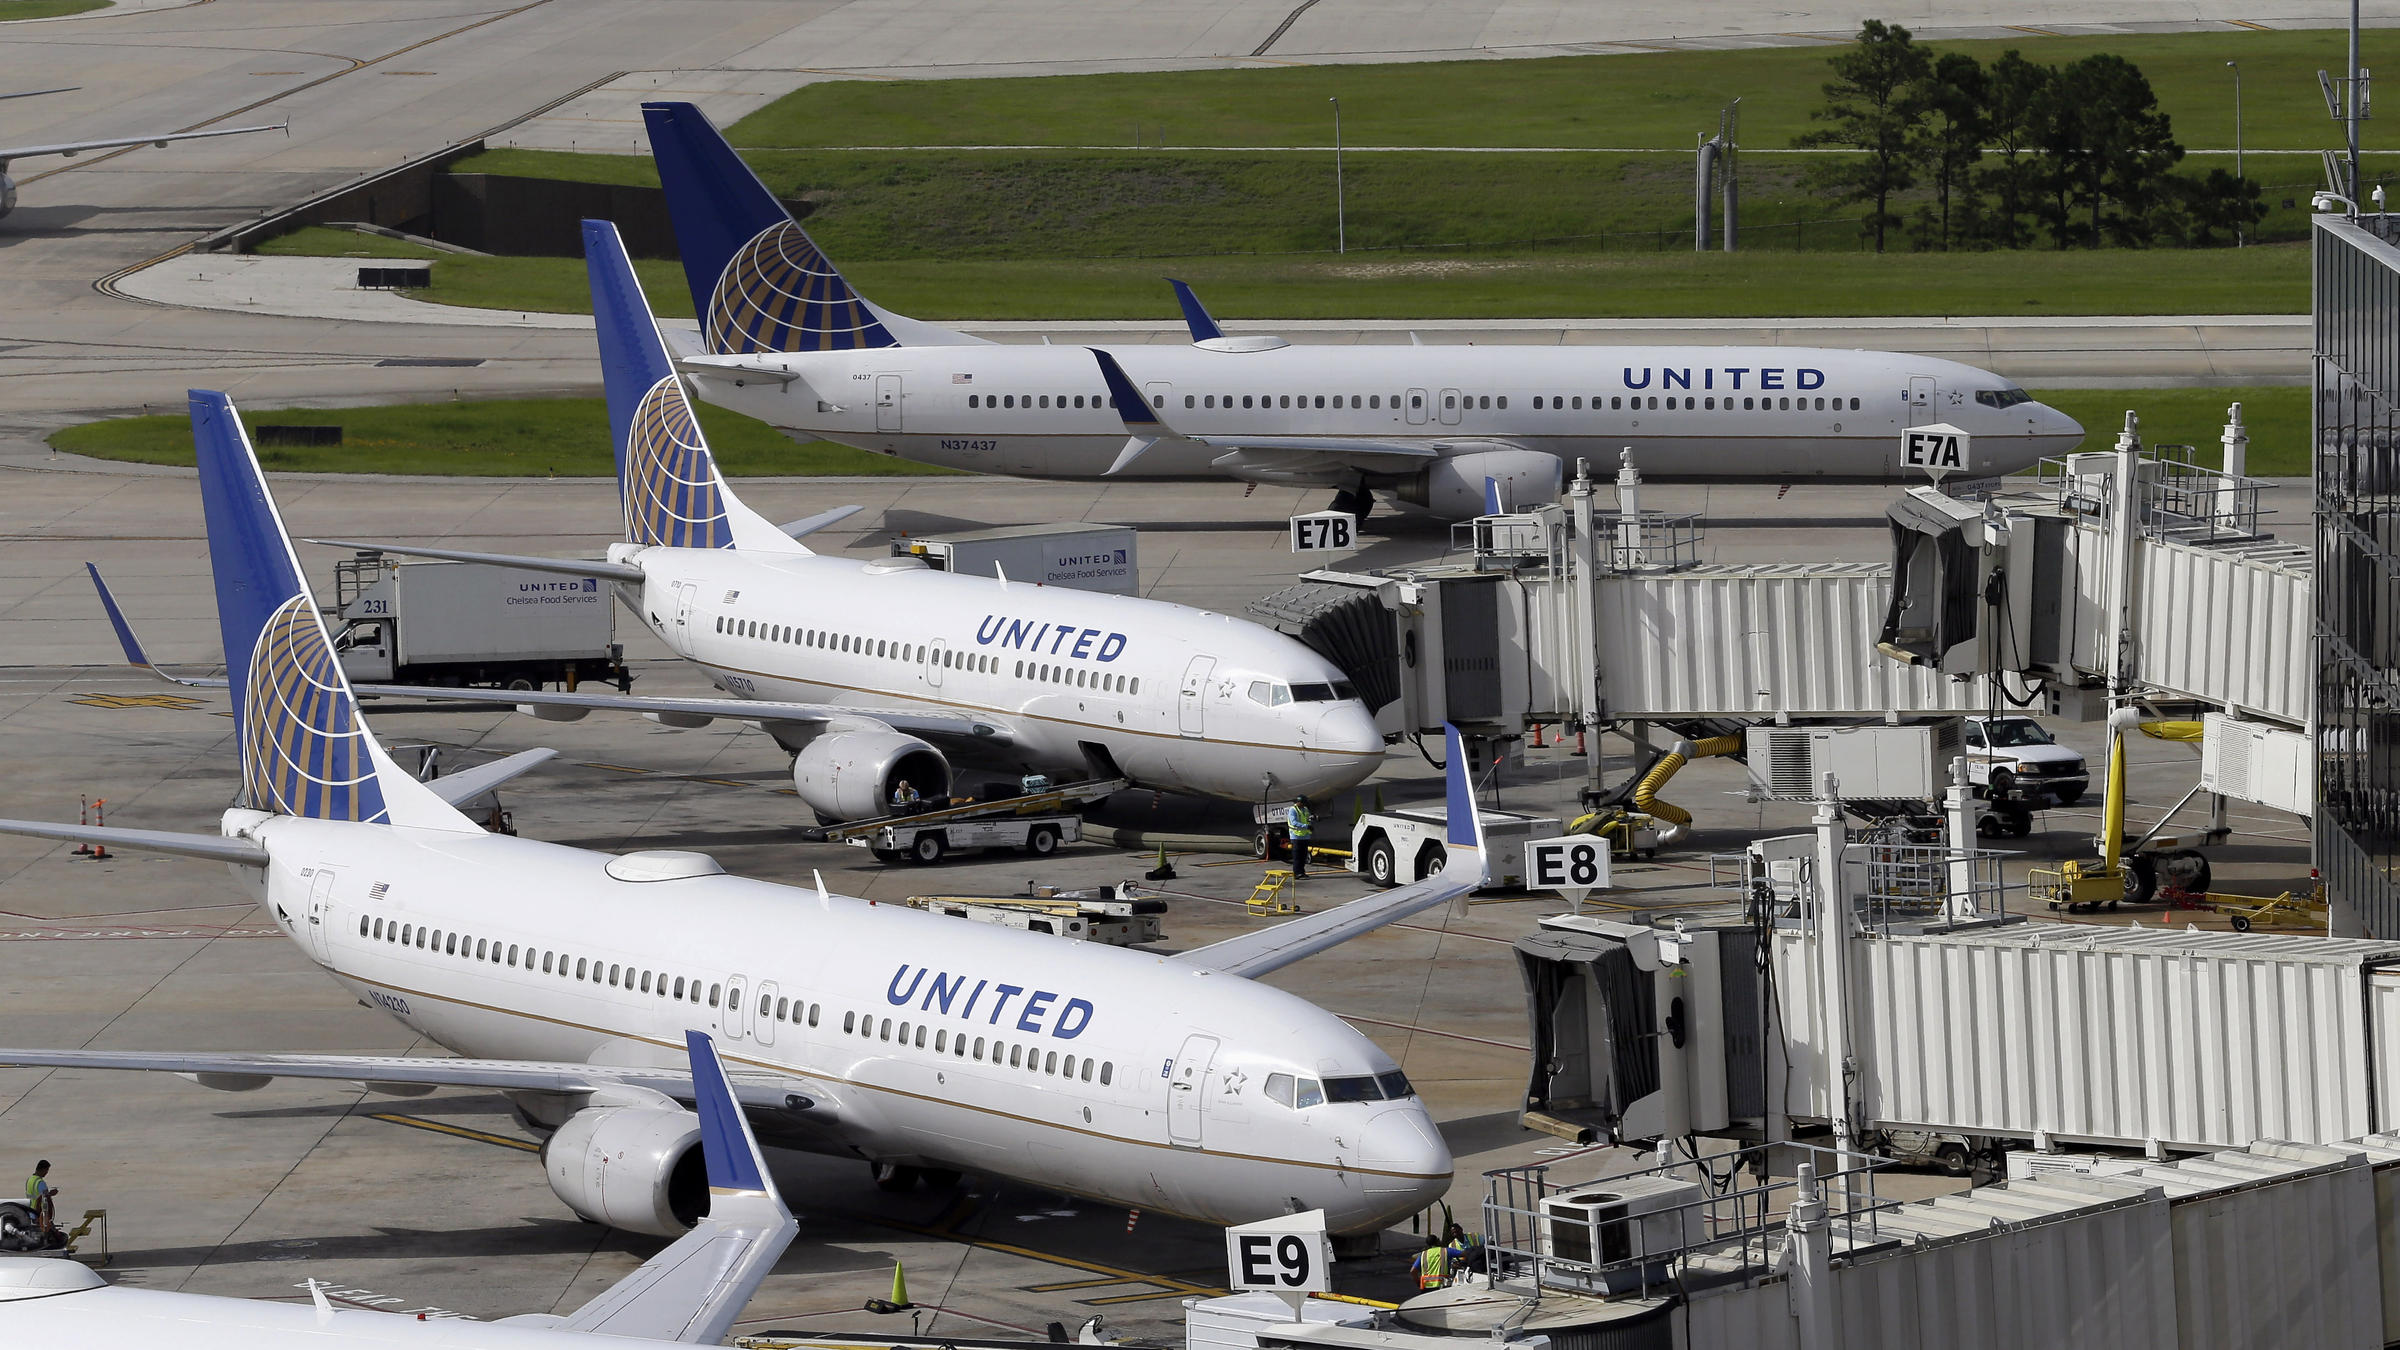 United kicks bride and groom heading for their wedding off flight